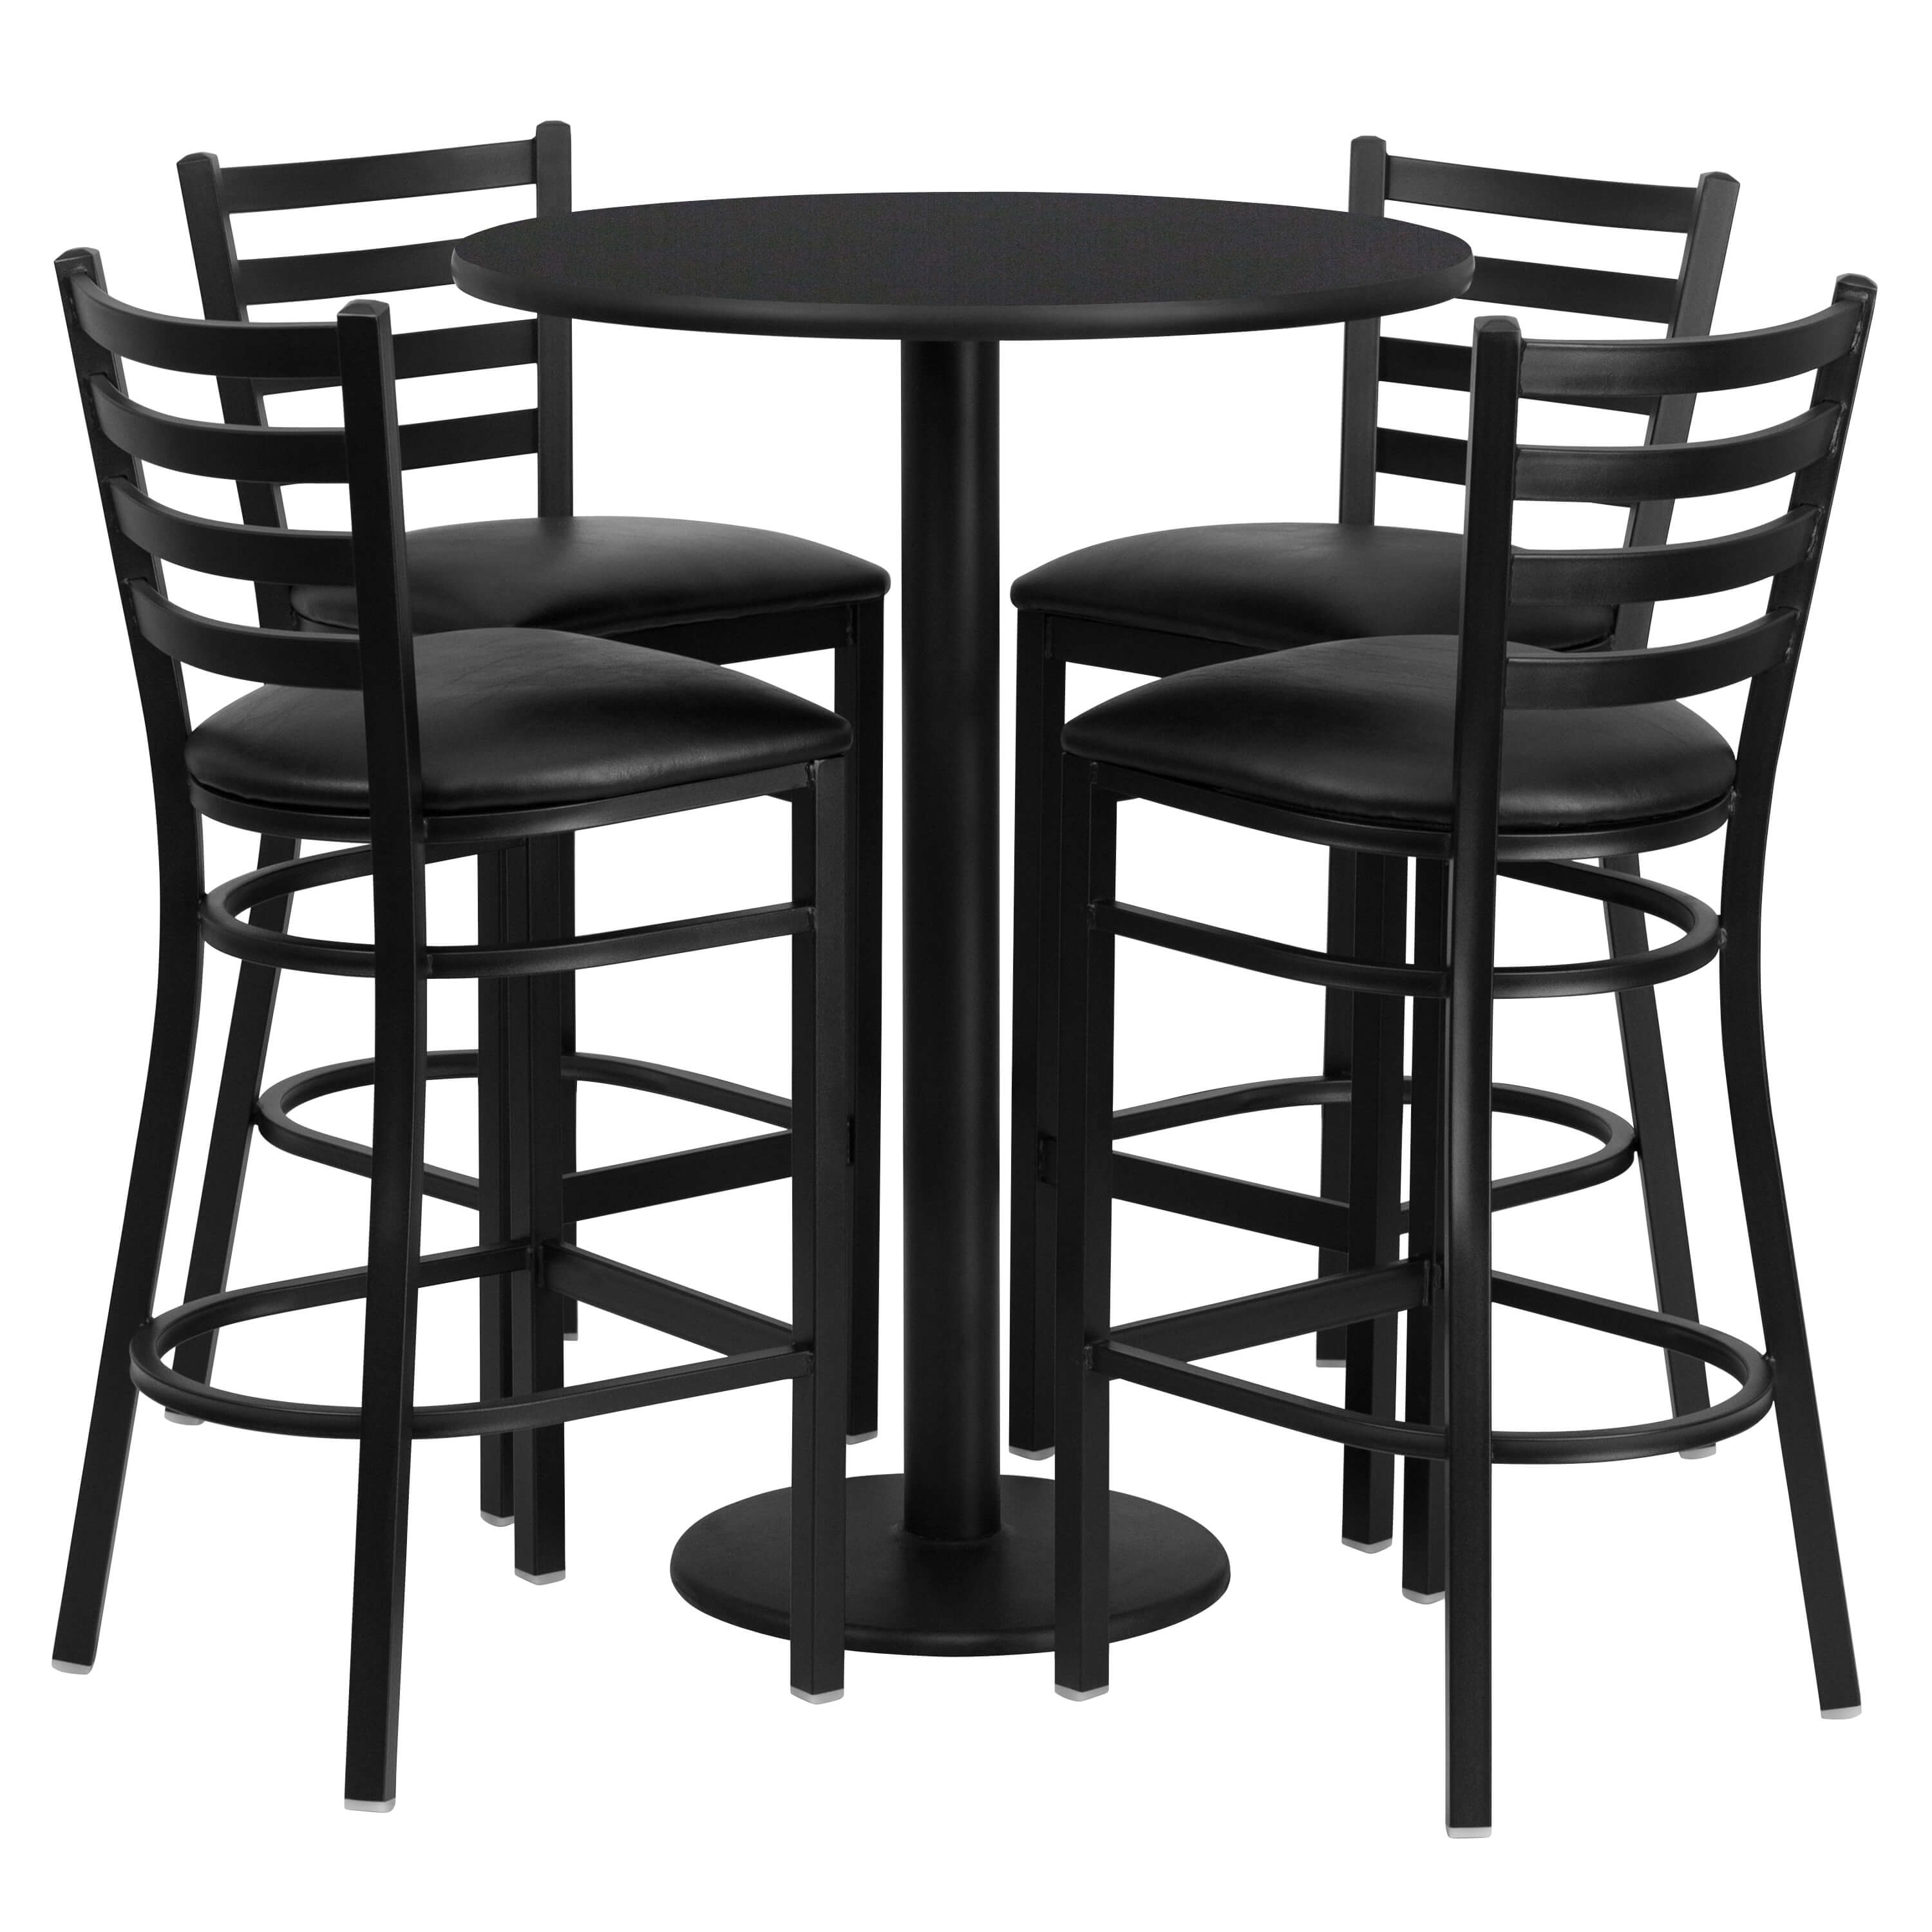 High top table set CUB RSRB1021 GG FLA